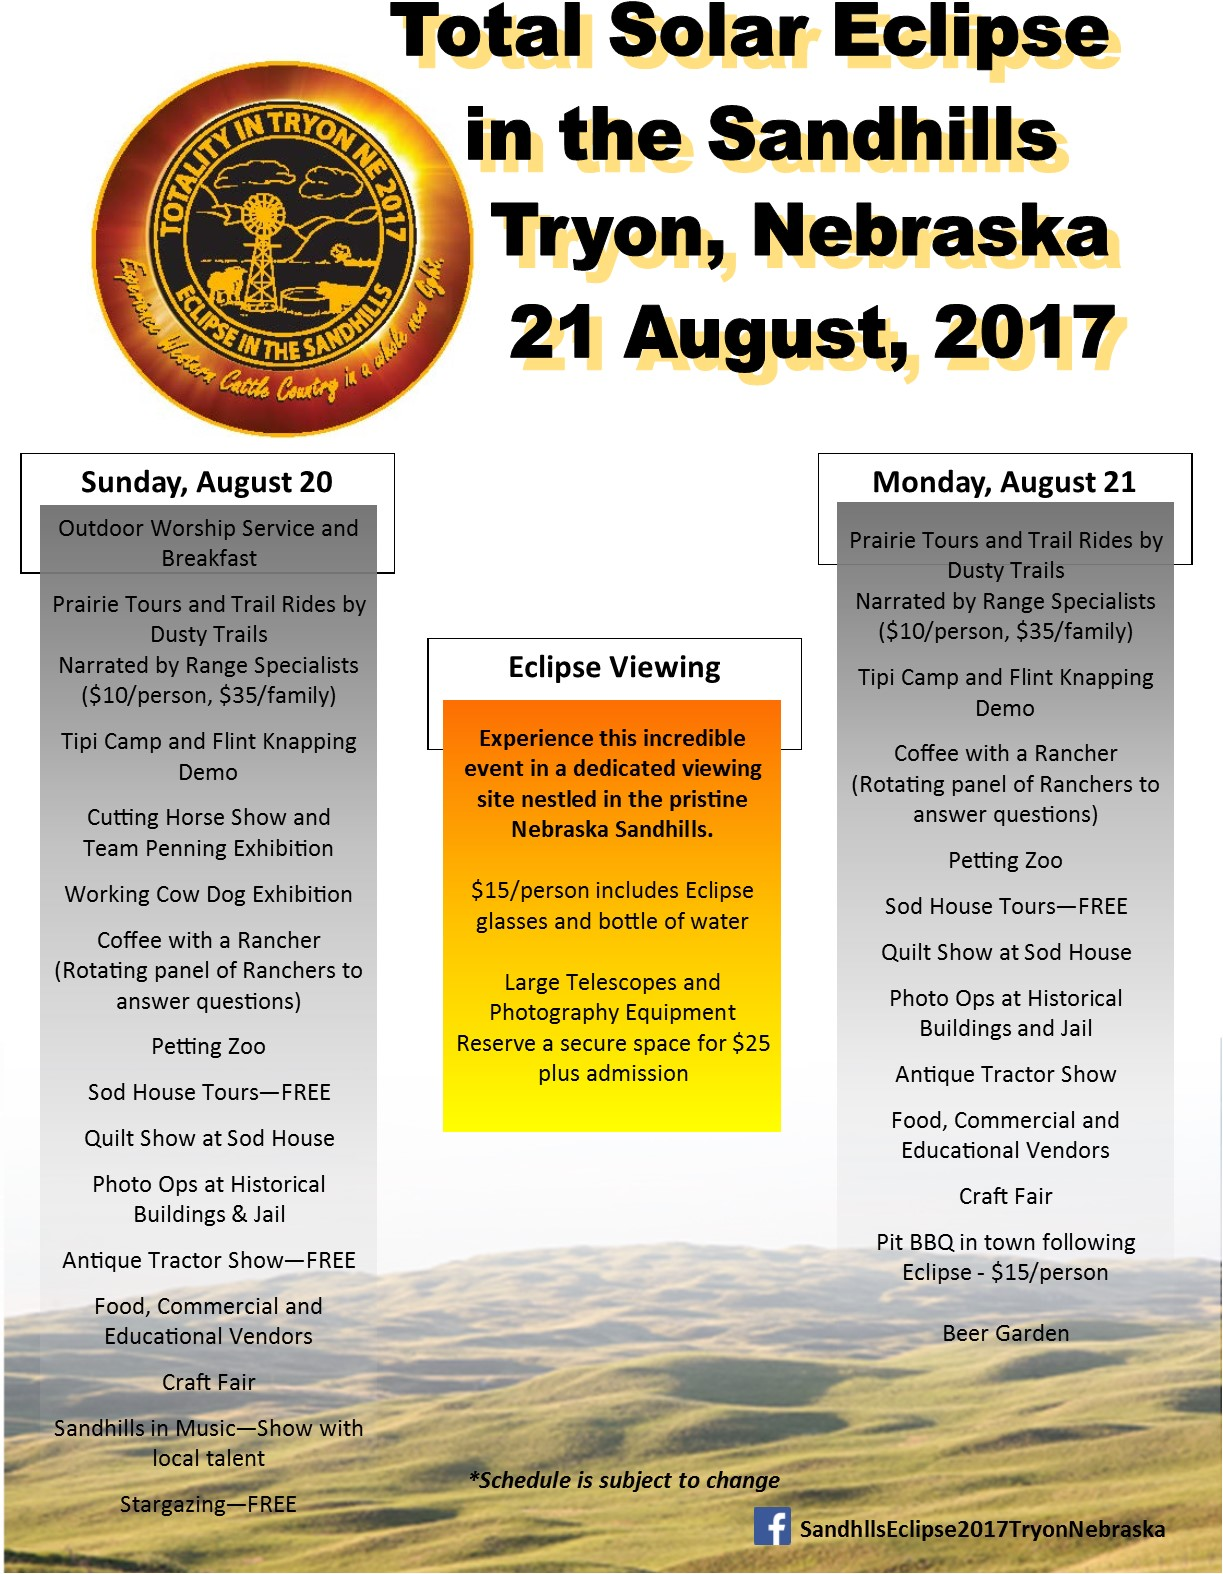 Tryon Nebraska Eclipse Events